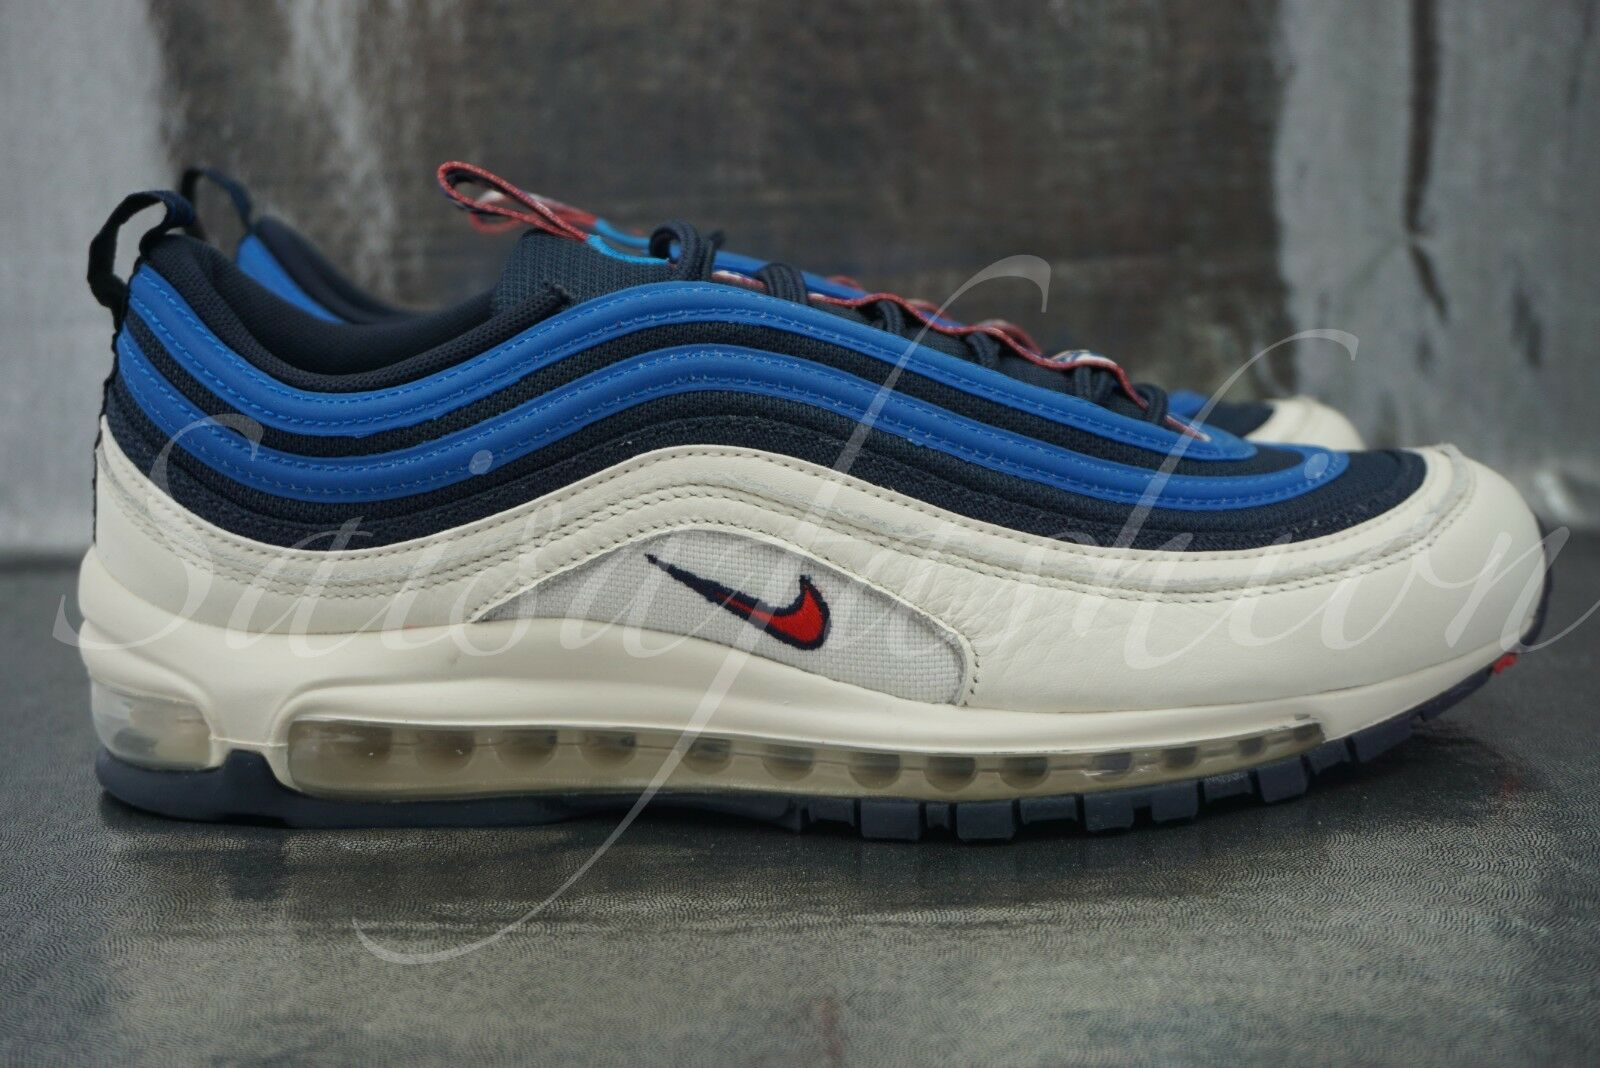 6dc3b0f0fd Nike Air Max 97 SE Pull Tab Obsidian University Red Sail Aq4126 400 ...